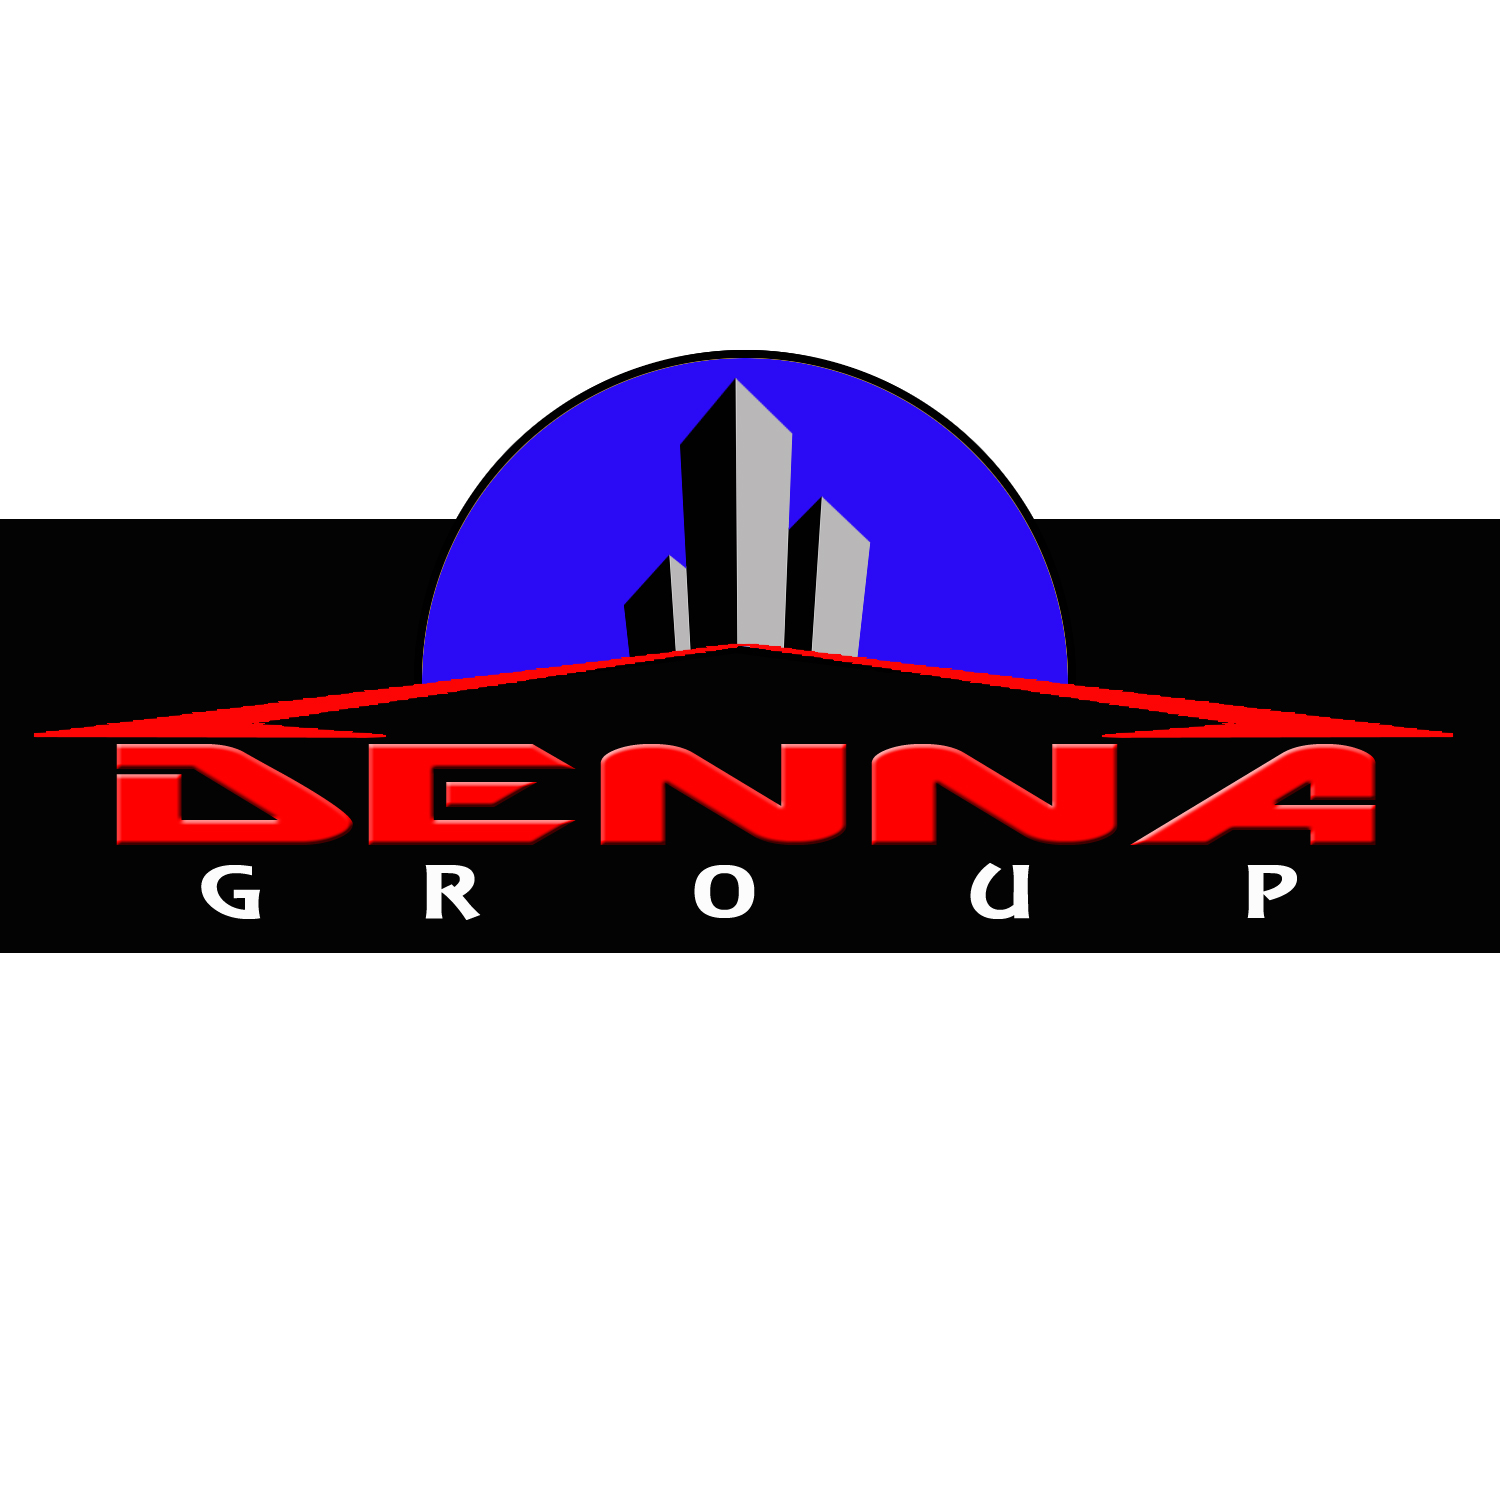 Logo Design by Glenn Panis - Entry No. 76 in the Logo Design Contest Denna Group Logo Design.